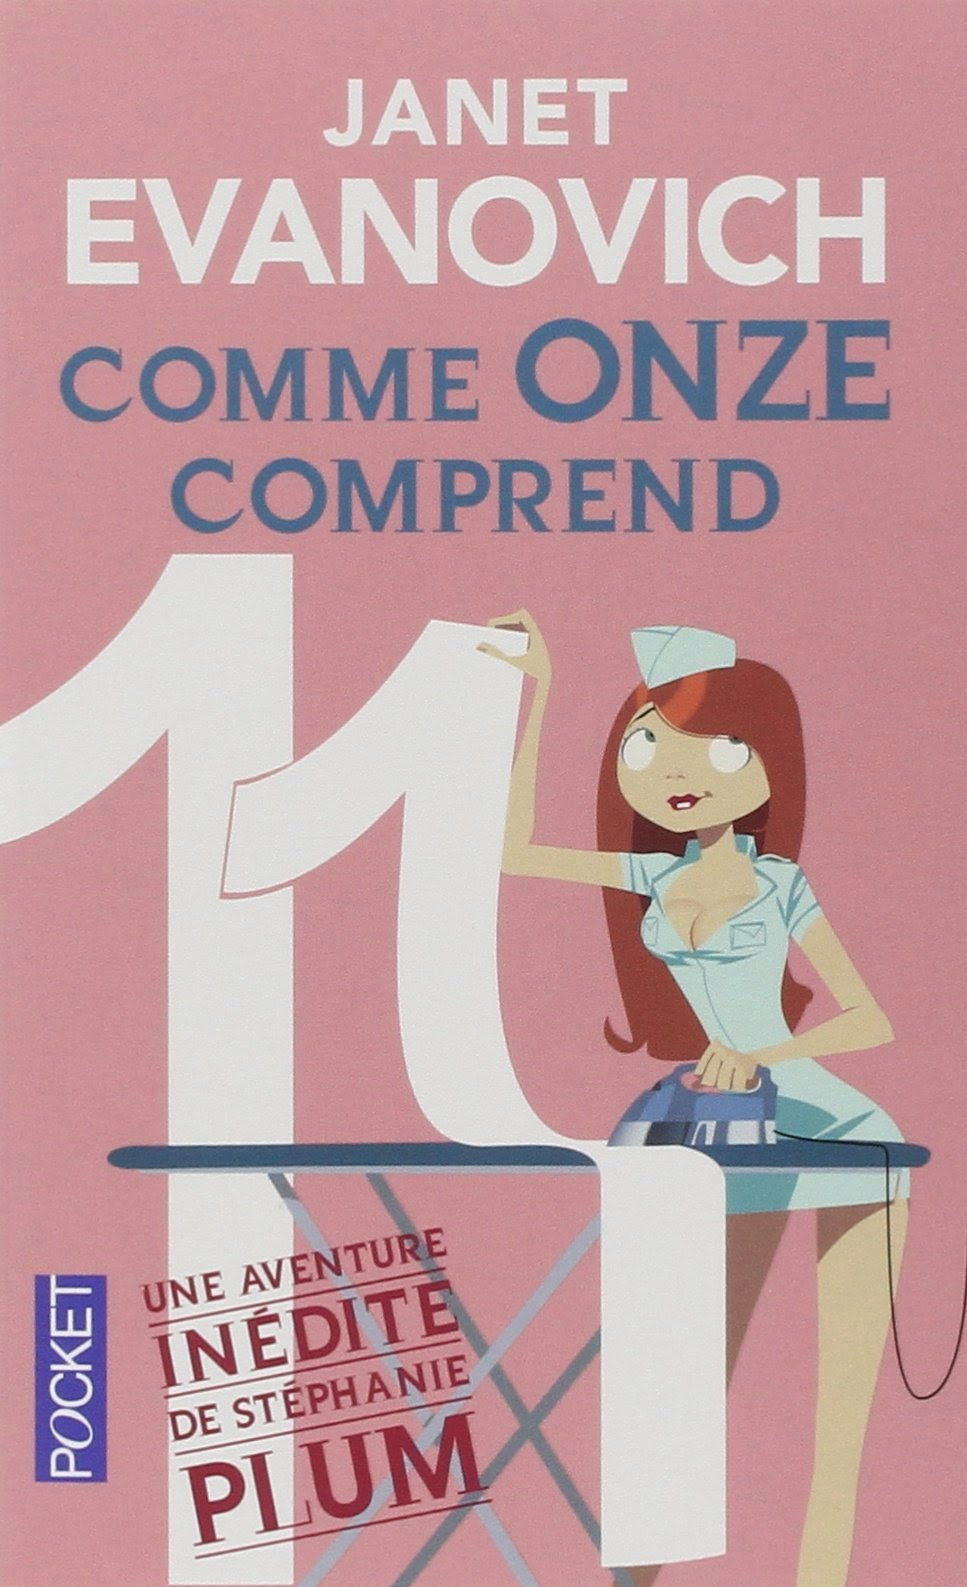 Janet Evanovich - Comme onze comprend